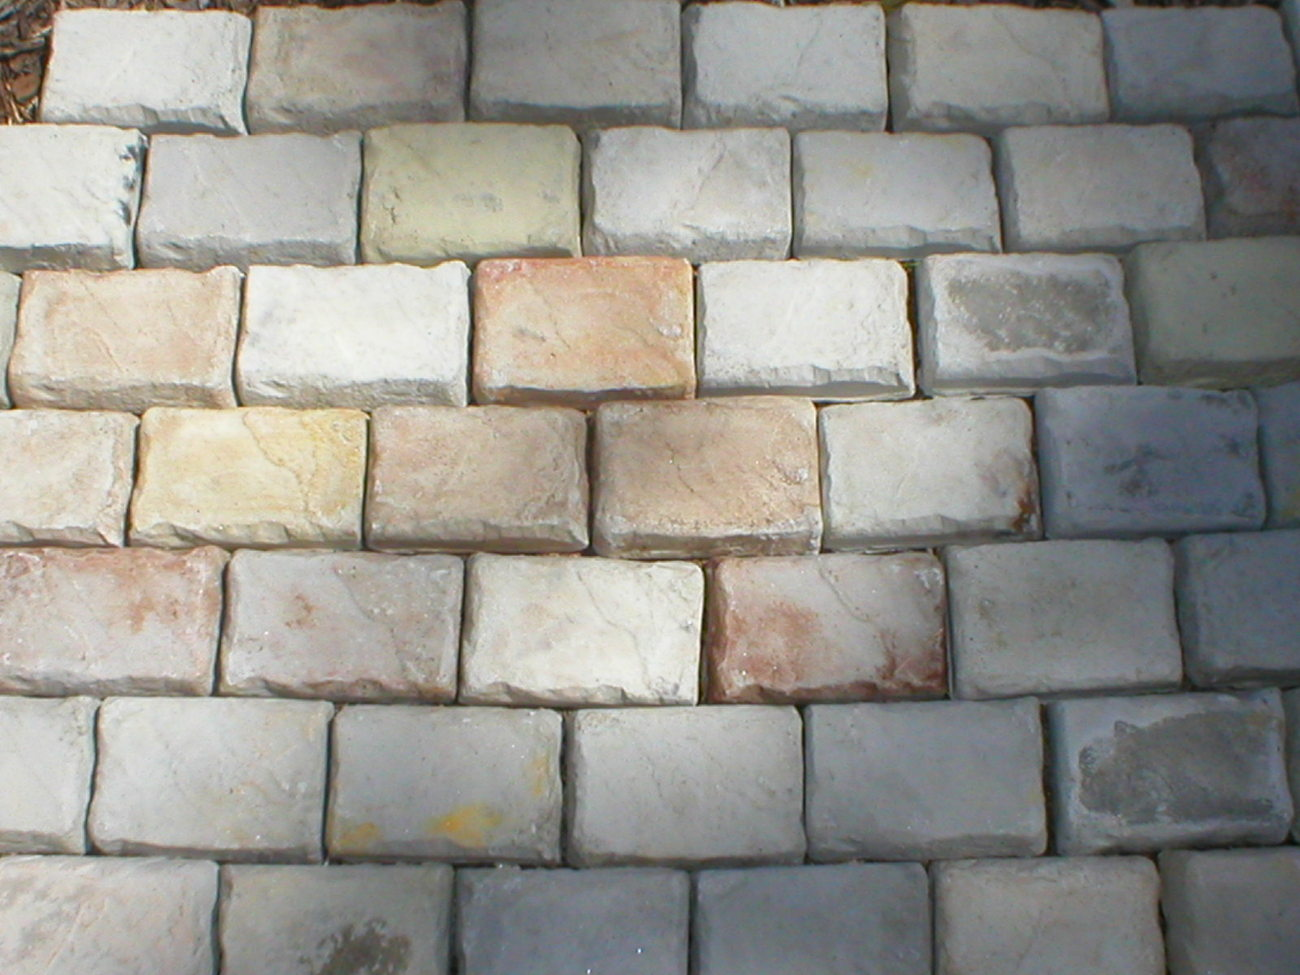 24 MOLDS + SUPPLY KIT TO CRAFT 100s OF 4x6x1.5 PATIO PAVERS OR TILES FOR PENNIES